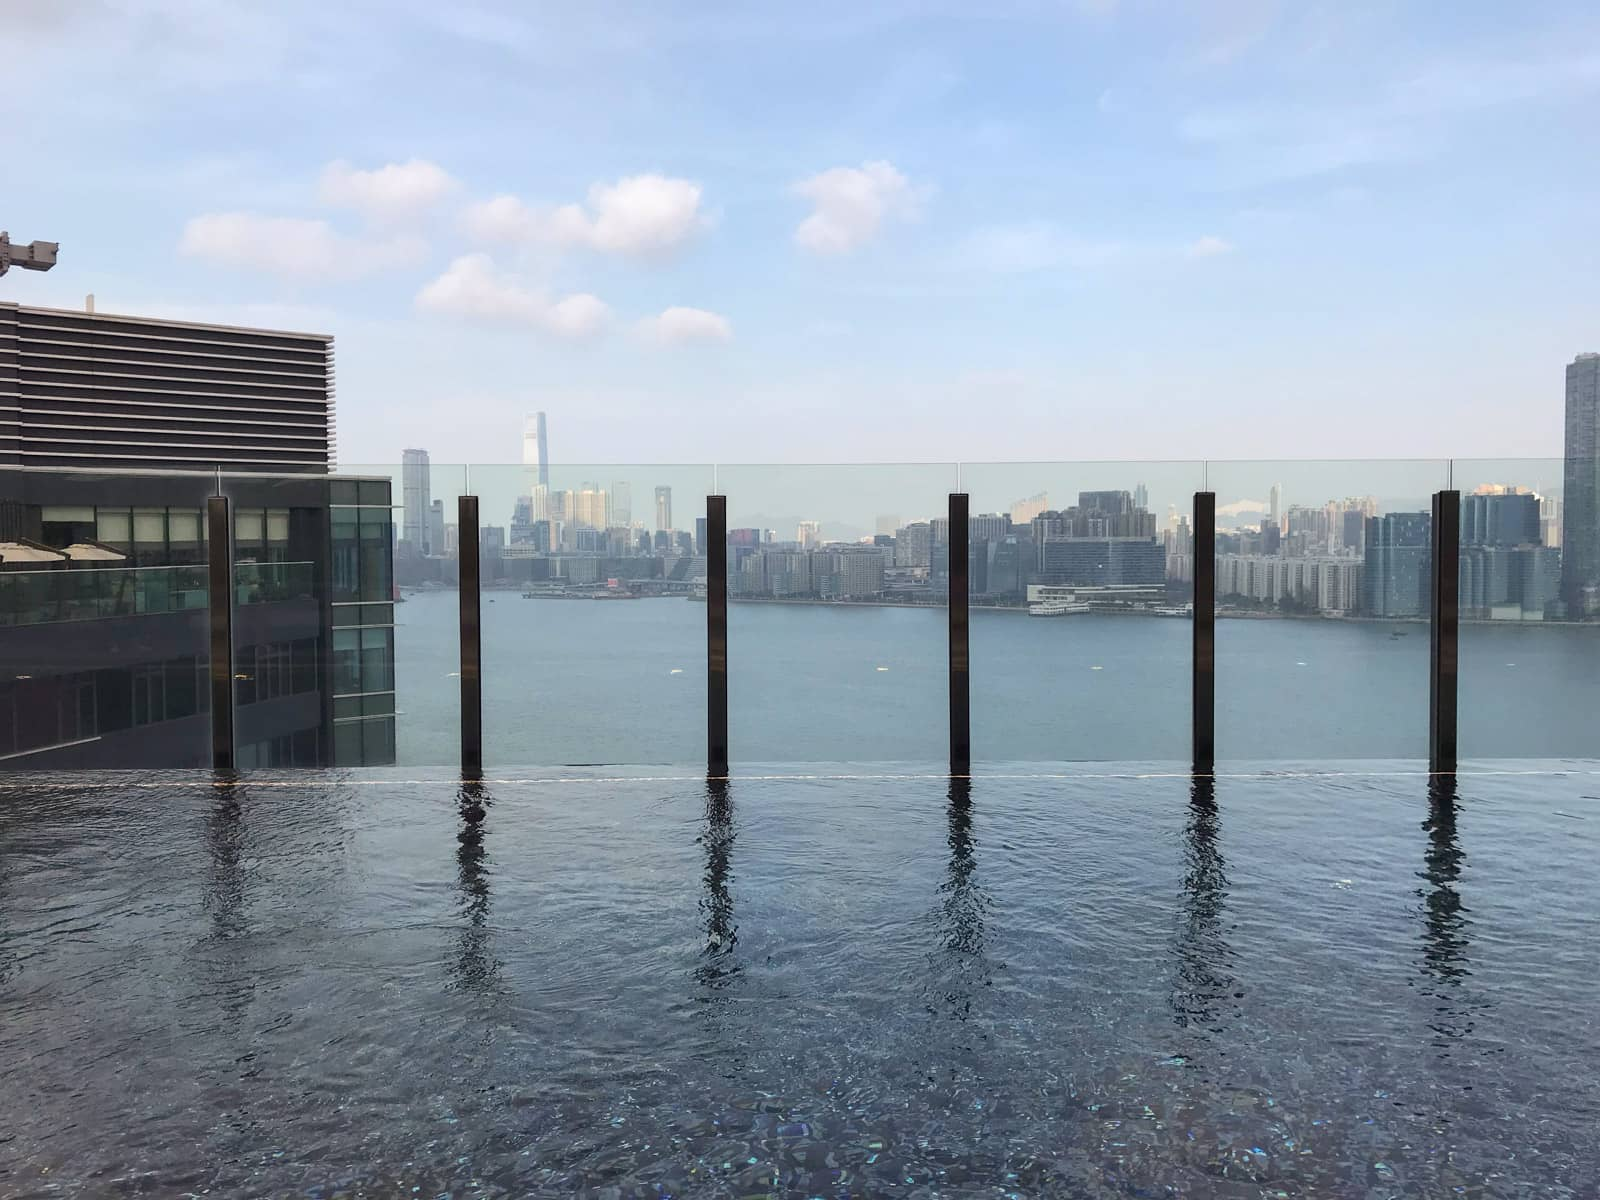 The view of an infinity pool from the water side, showing a view of Hong Kong through the glass at the end of the pool